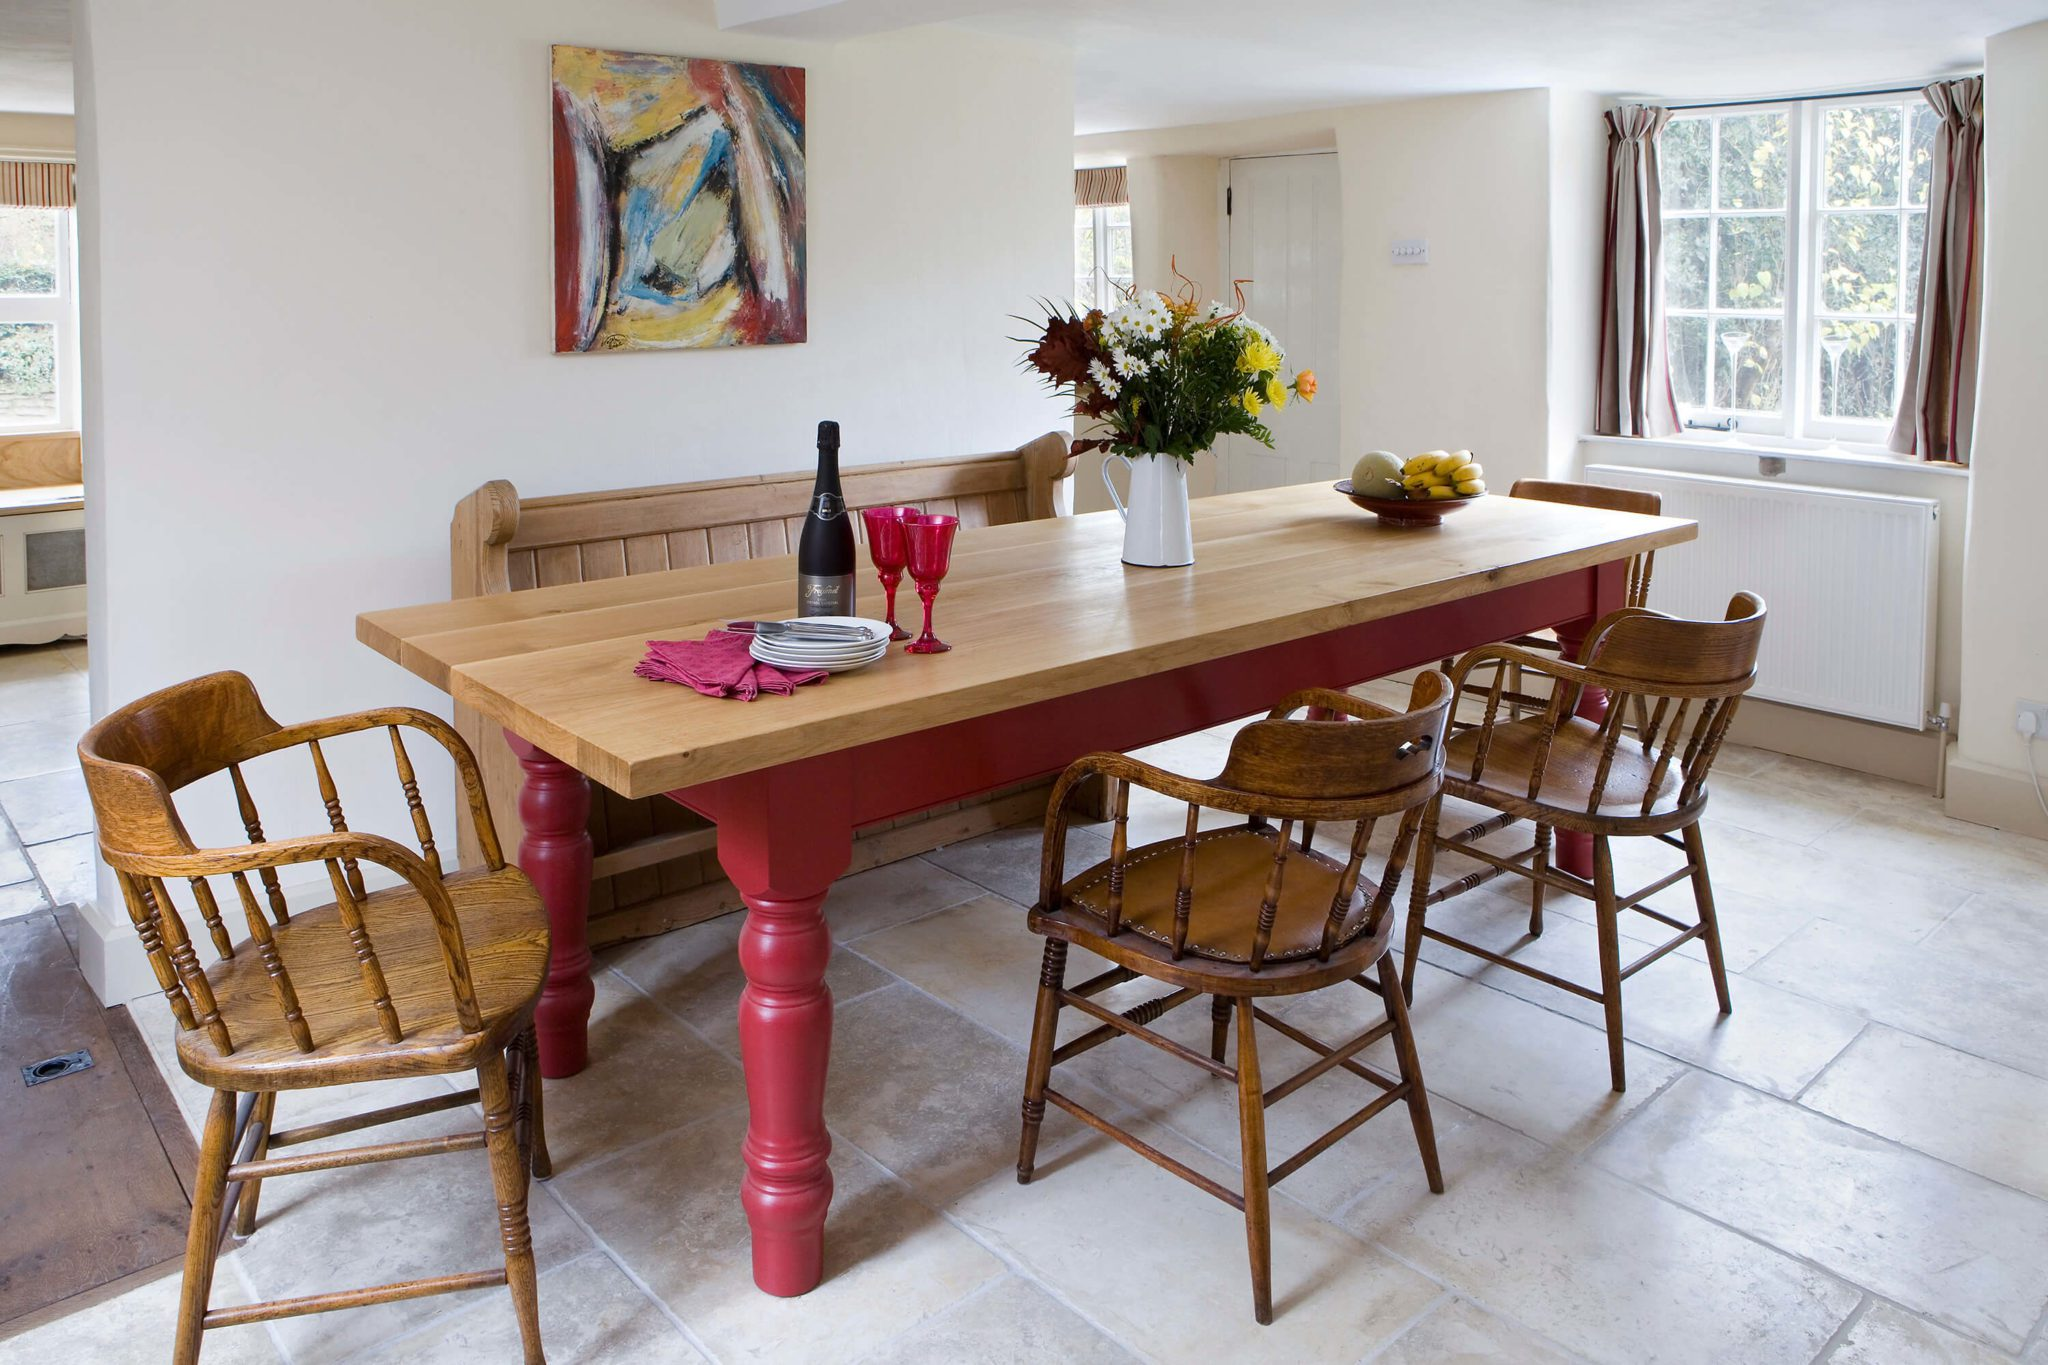 Furniture Kitchens and Furniture - Table - Hill Farm Furniture